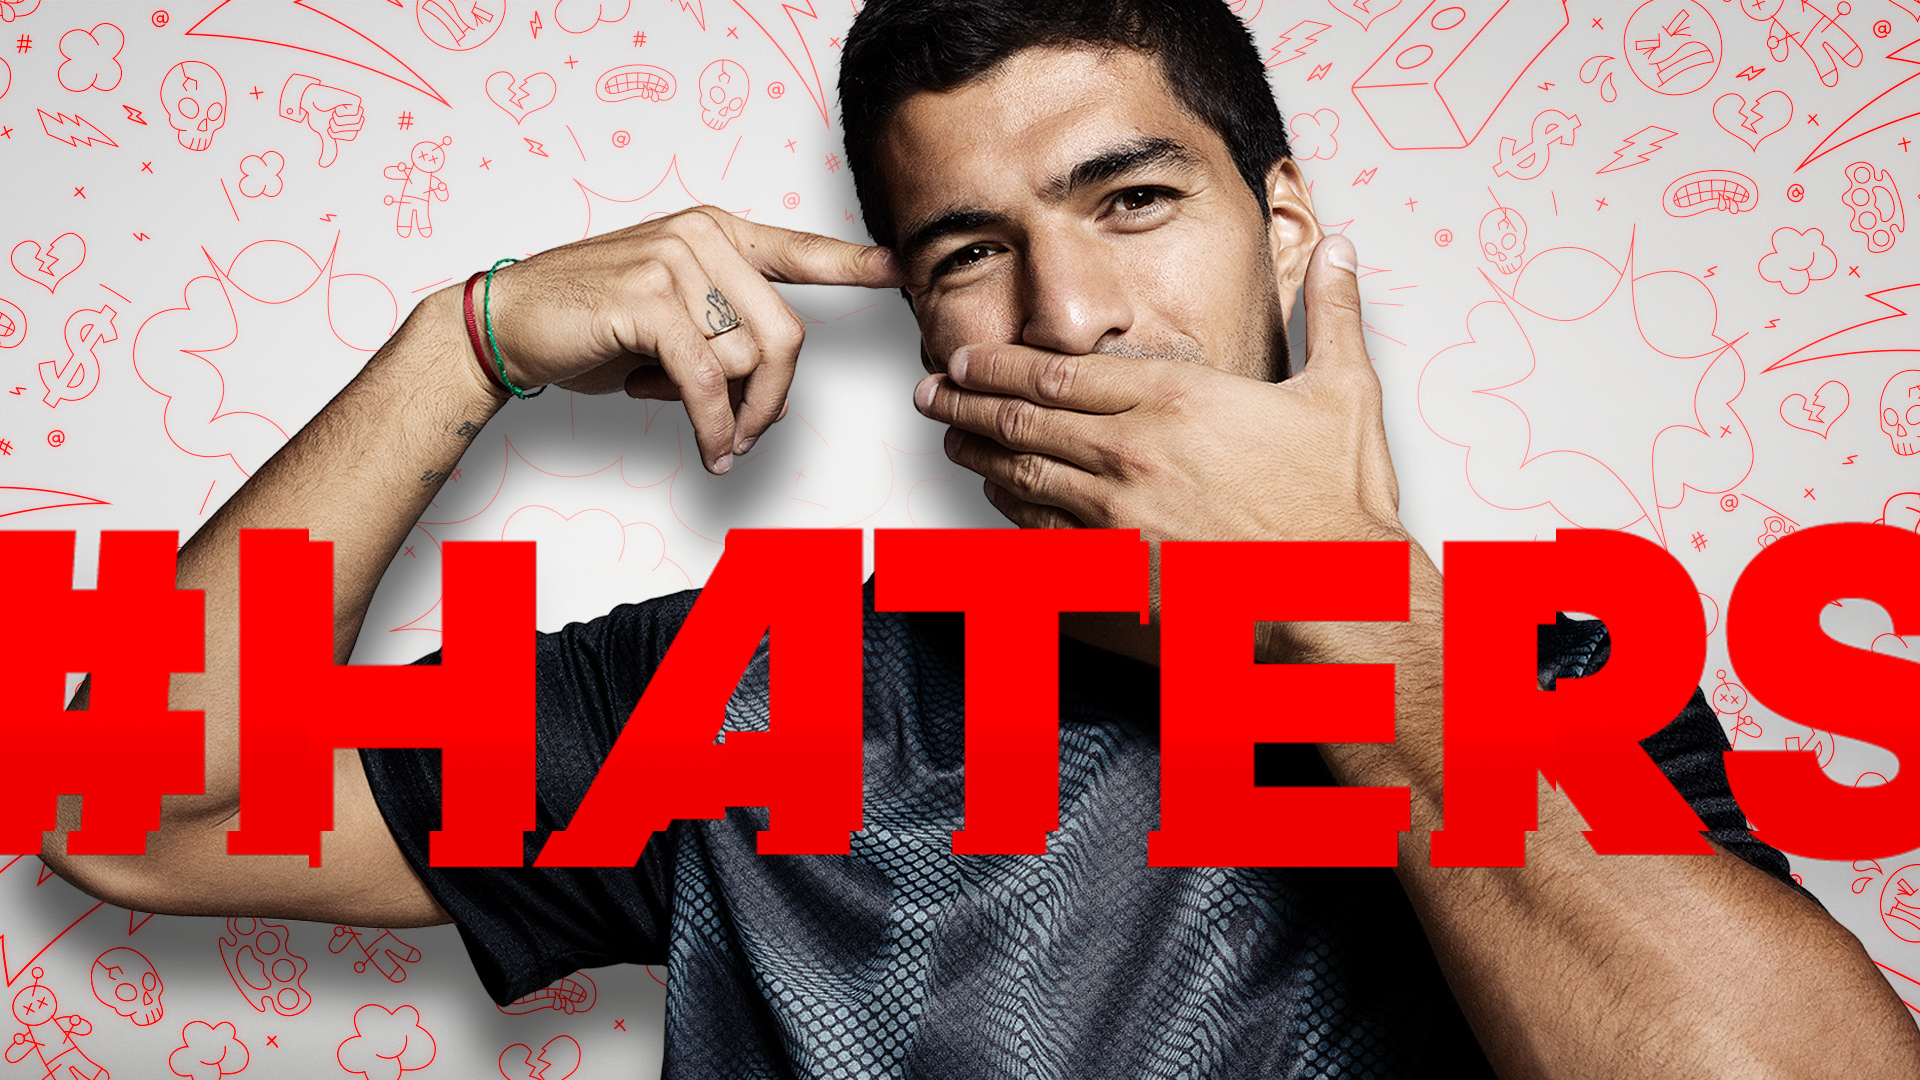 There Will Be Haters